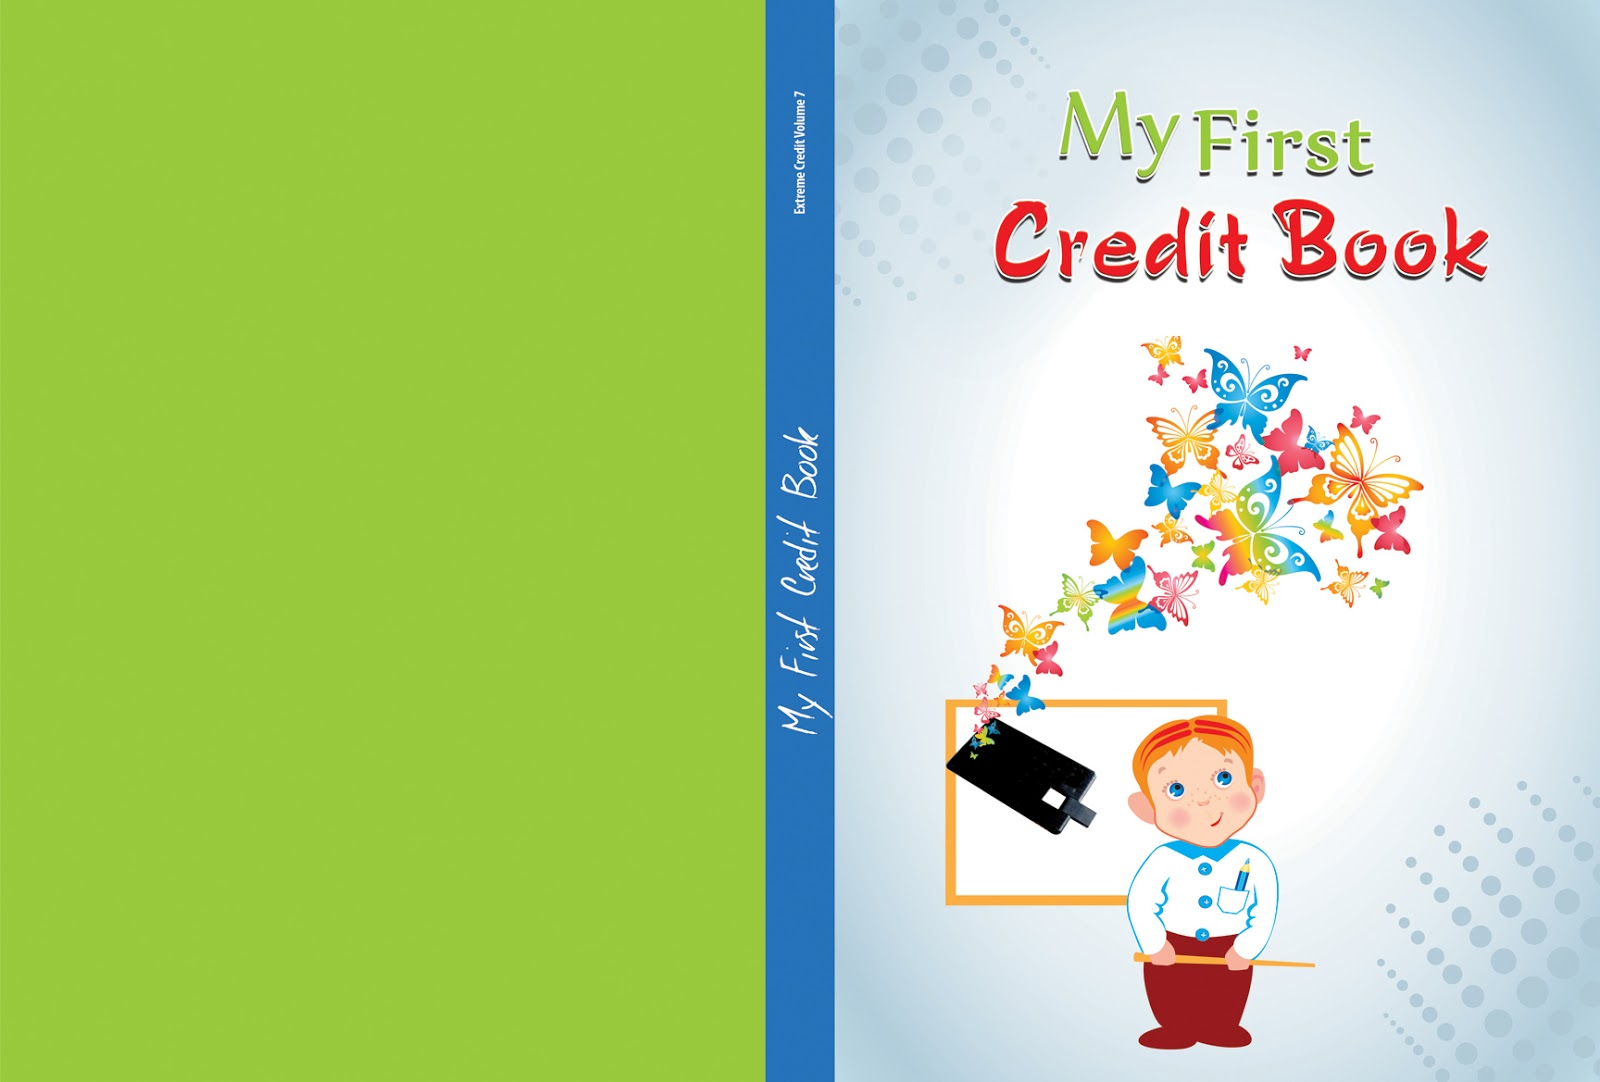 Drawing Book Cover Design For Kids ~ Creative design book cover designs e covers